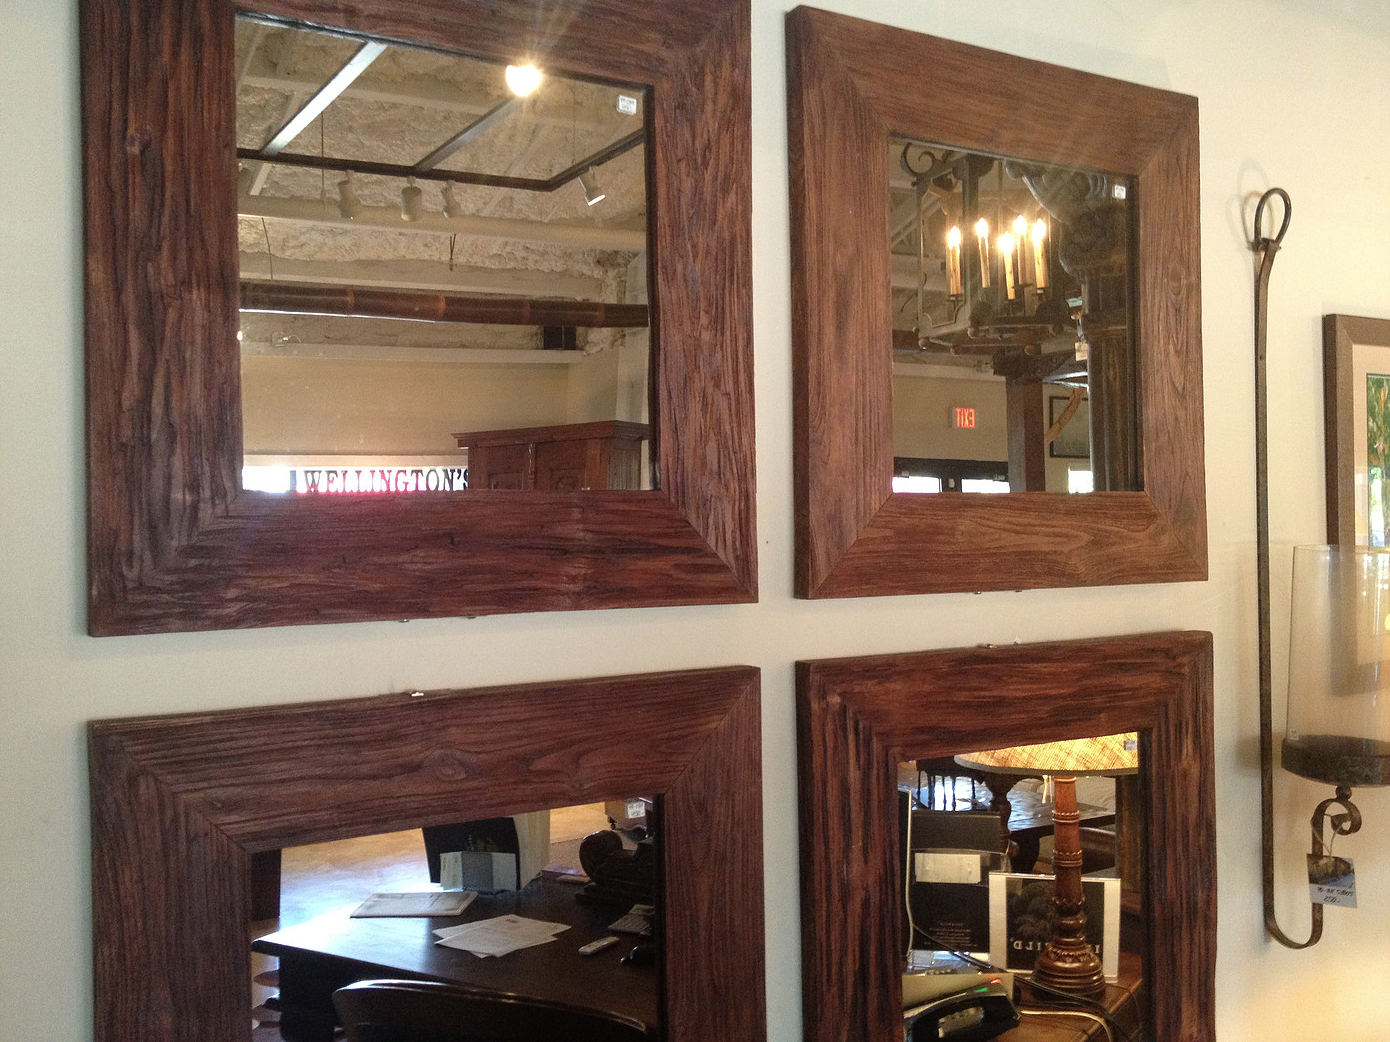 Square Four Piece Mirror  #mirror #home #decor #wood #